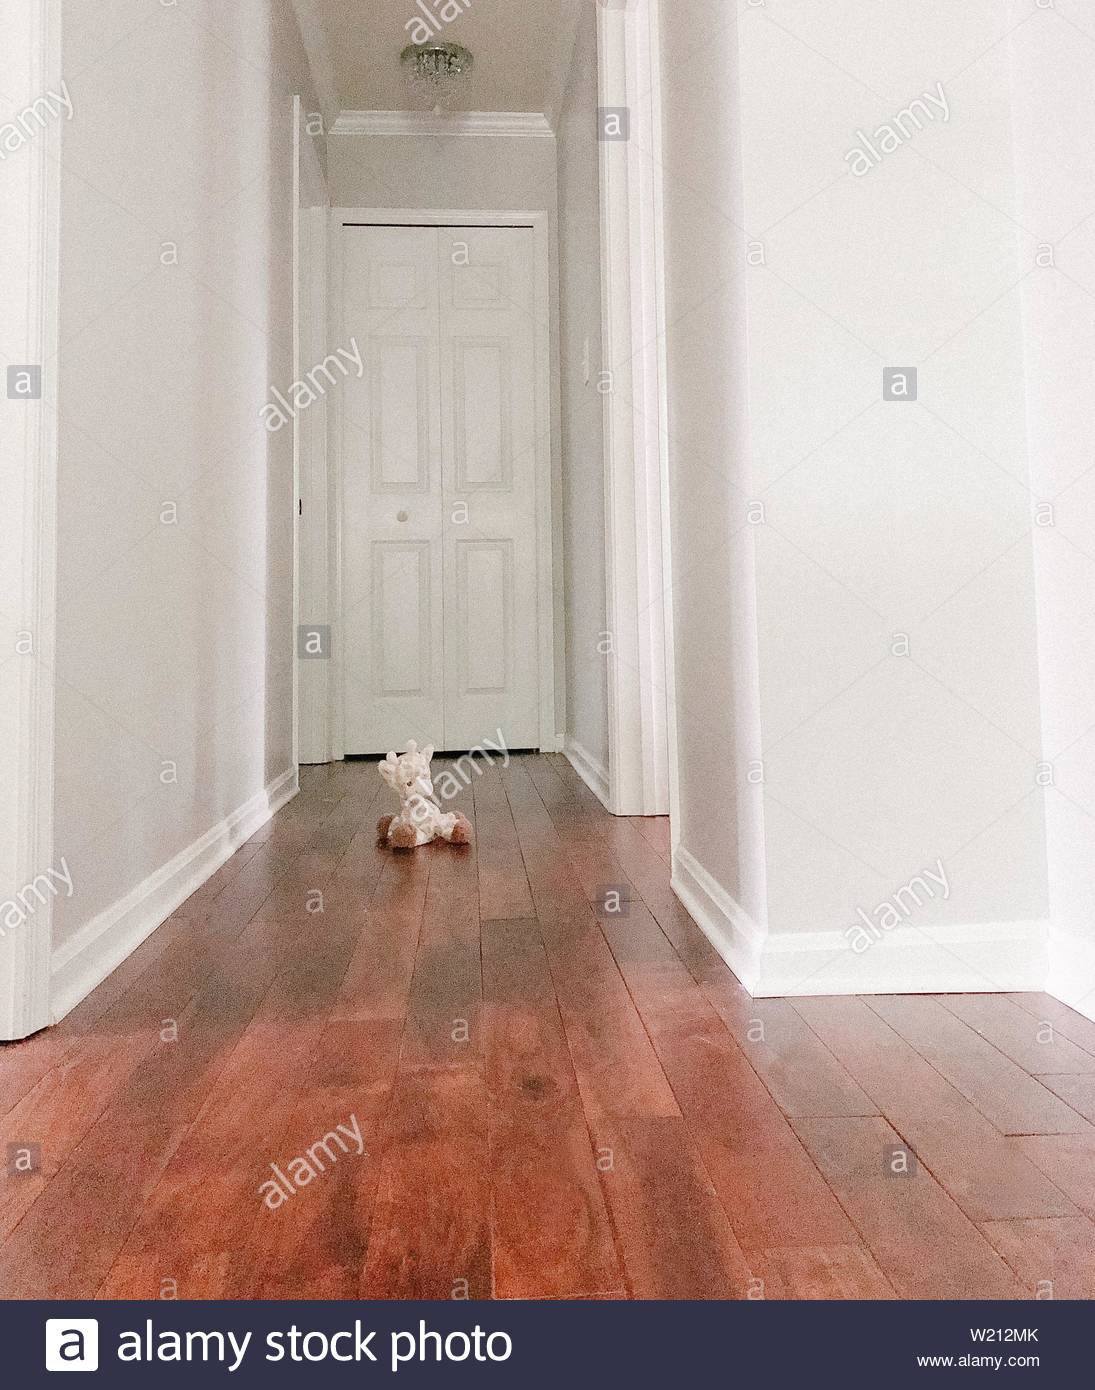 stuffed animal in middle of hall - Stock Image